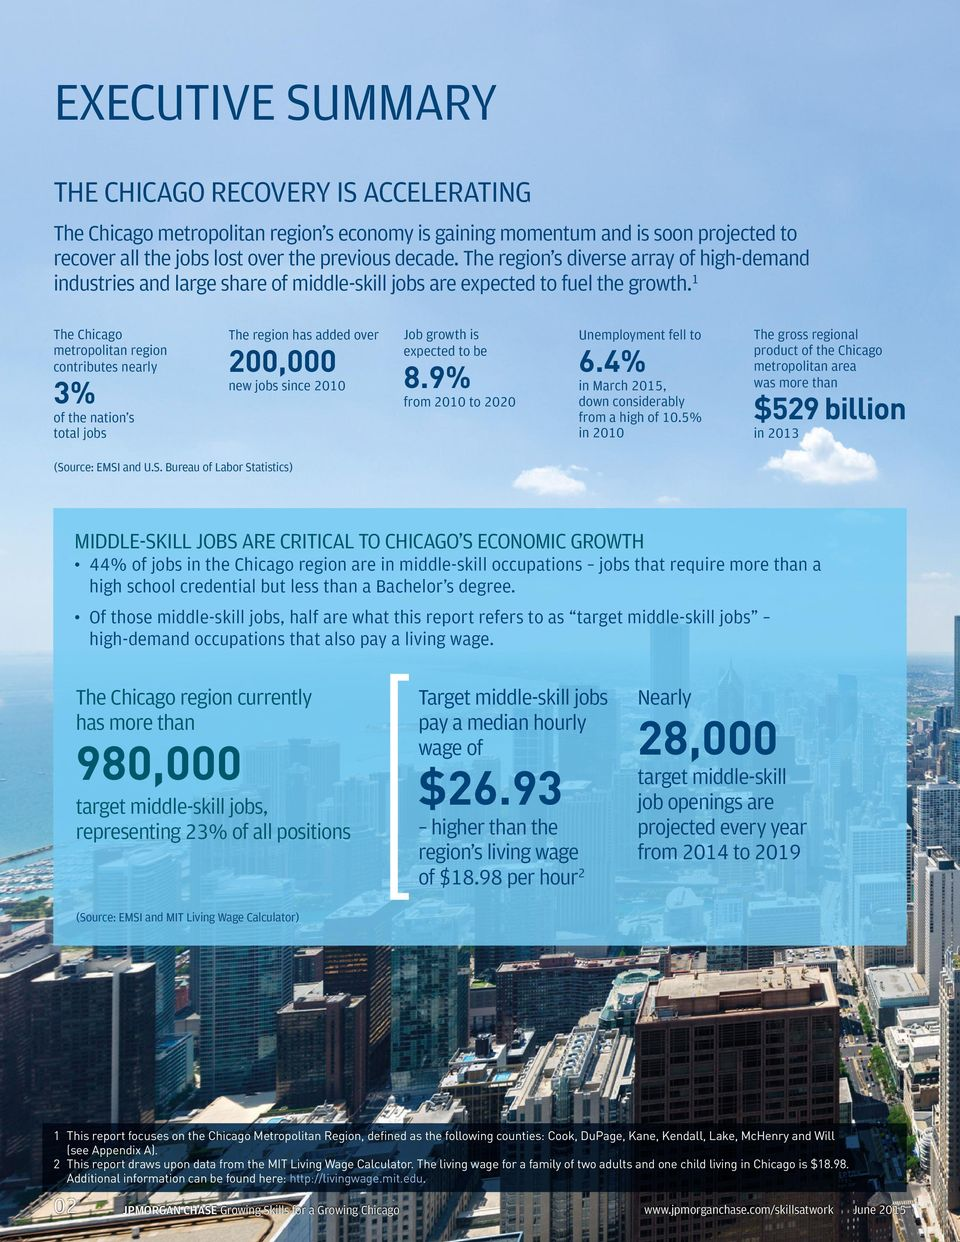 1 The Chicago metropolitan region contributes nearly 3% of the nation s total jobs The region has added over 200,000 new jobs since 2010 Job growth is expected to be 8.